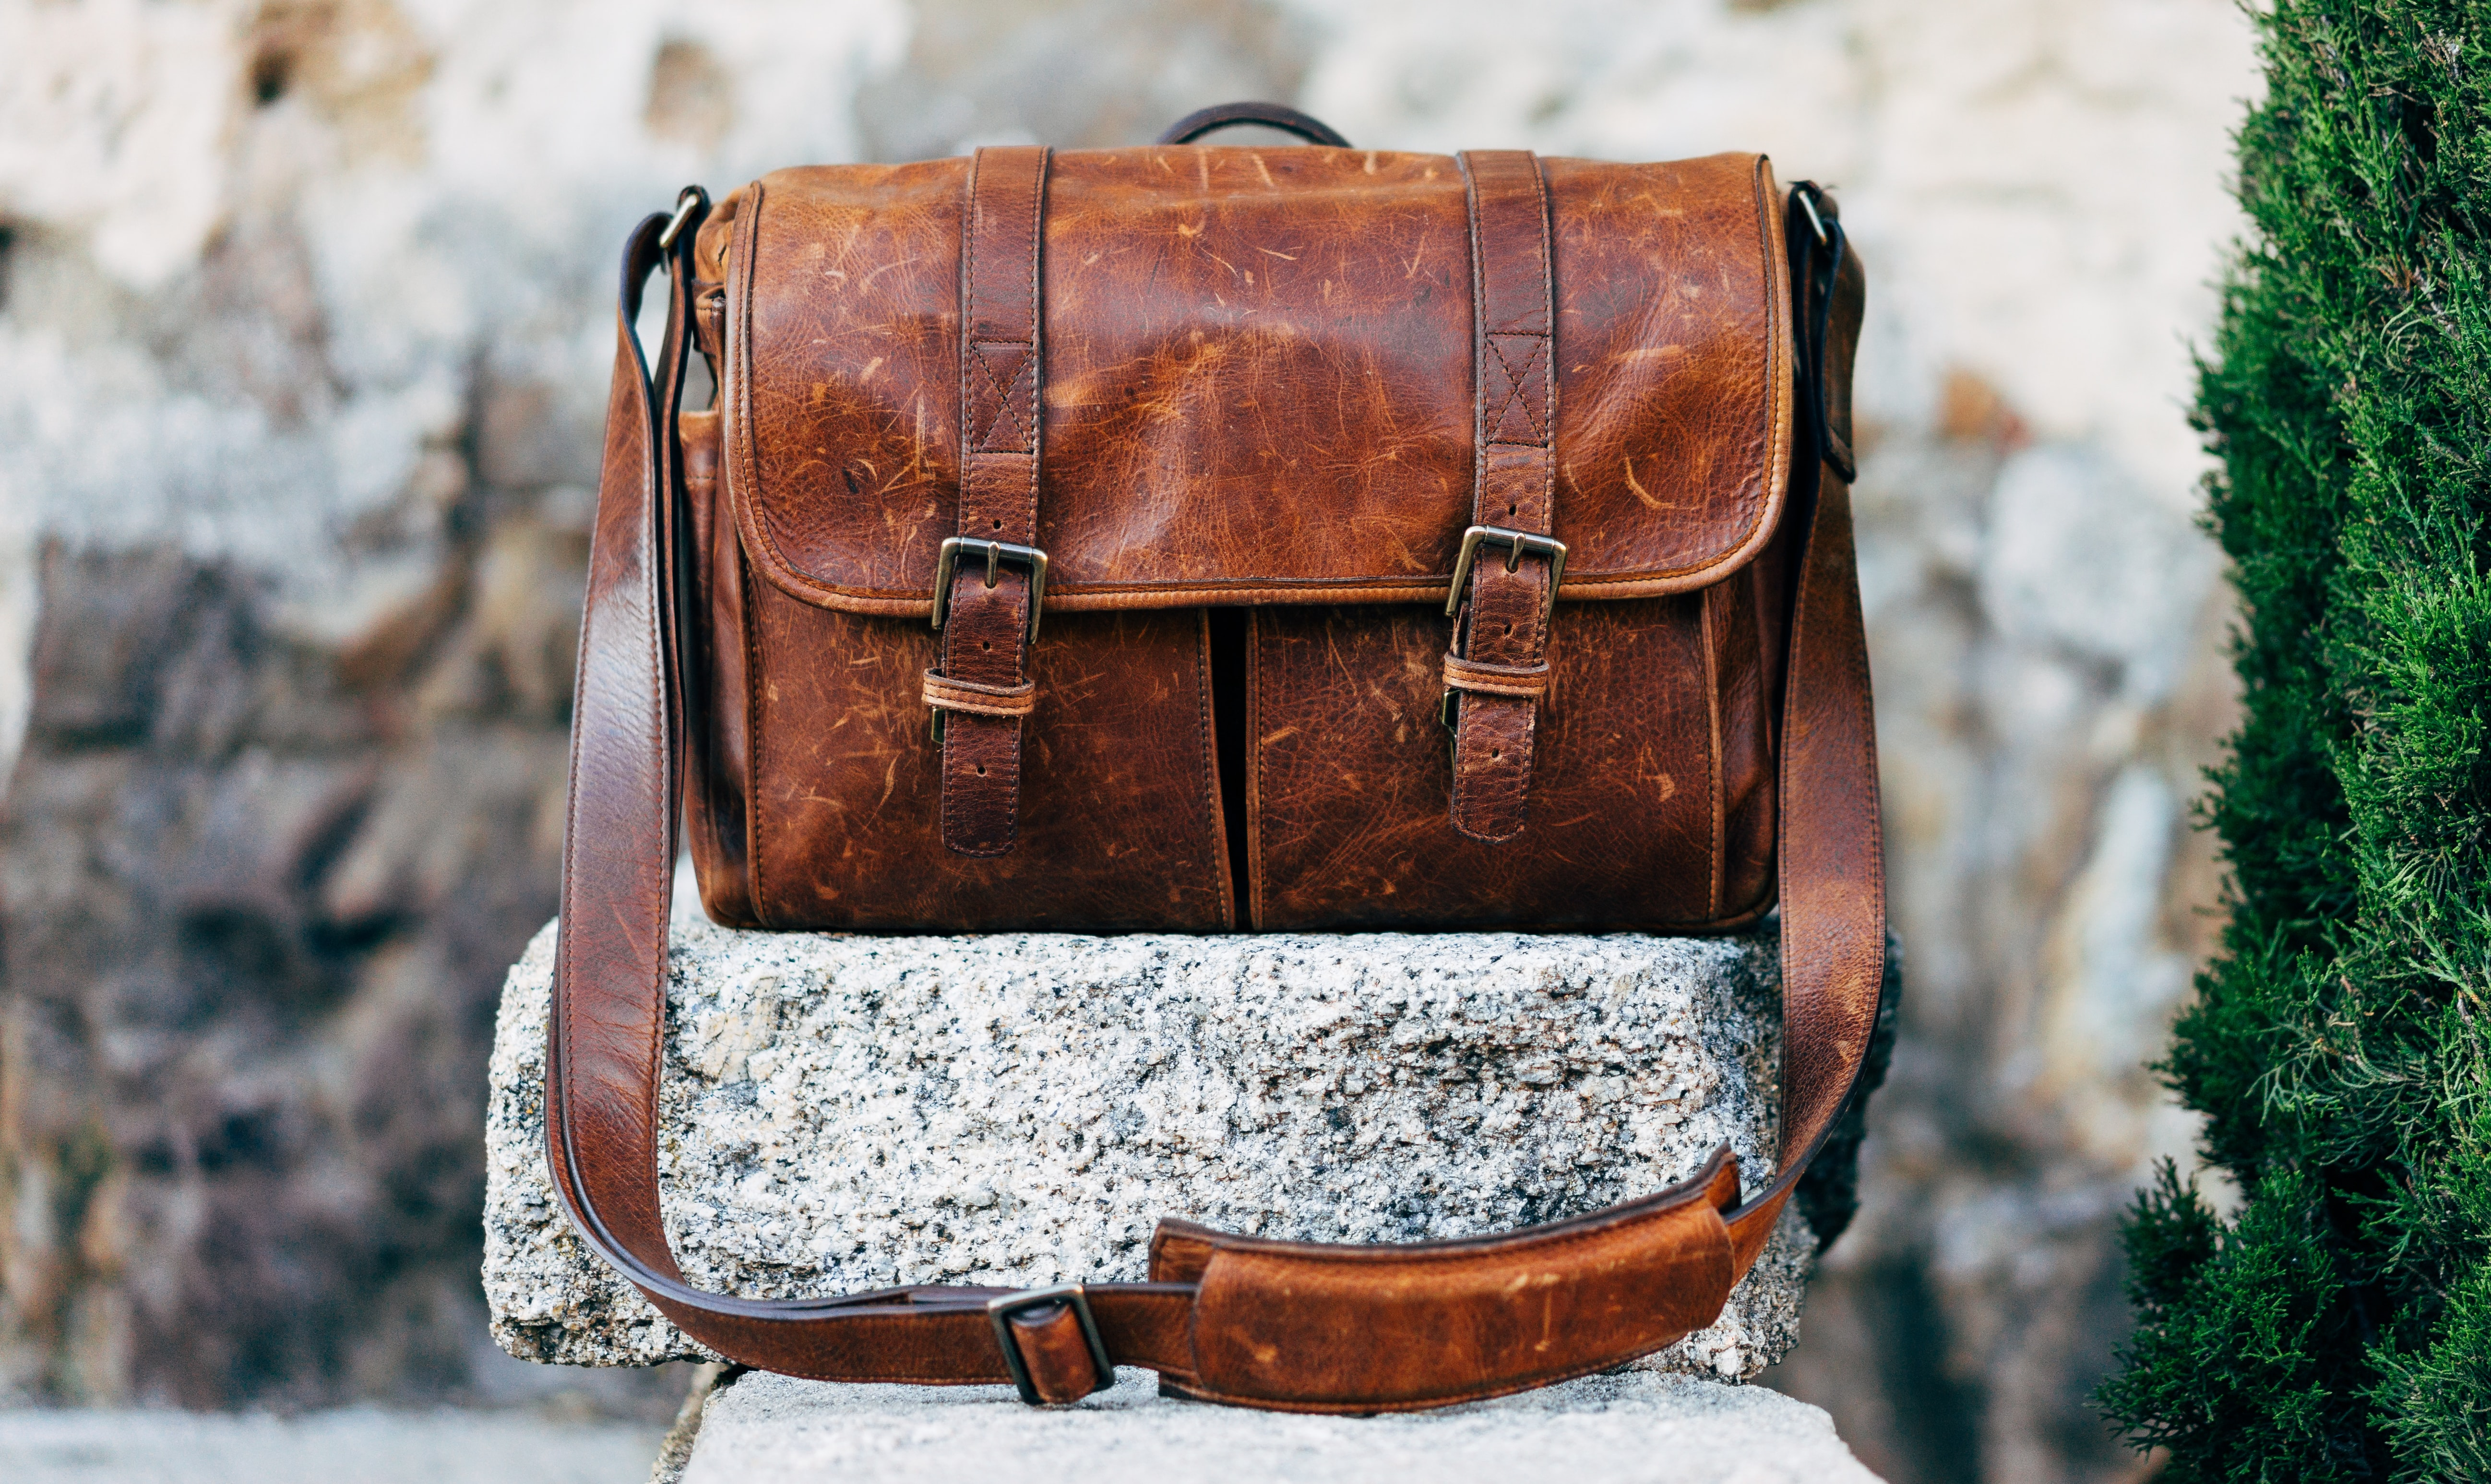 brown leather satchel bag on gray concrete surface near green plant at daytime